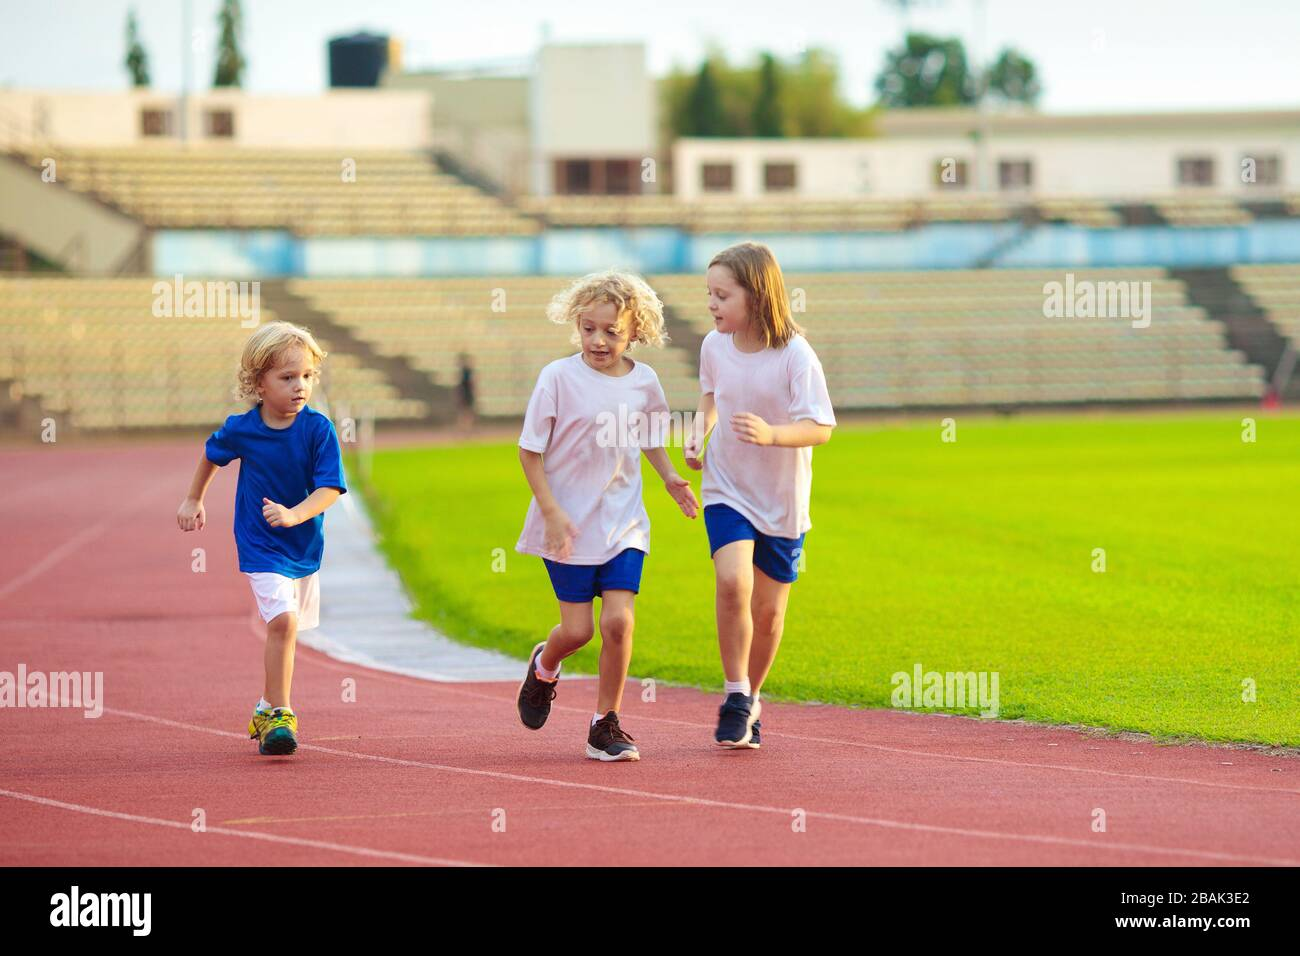 little girl athletics two girls running on athletic race track-4637 | Meashots